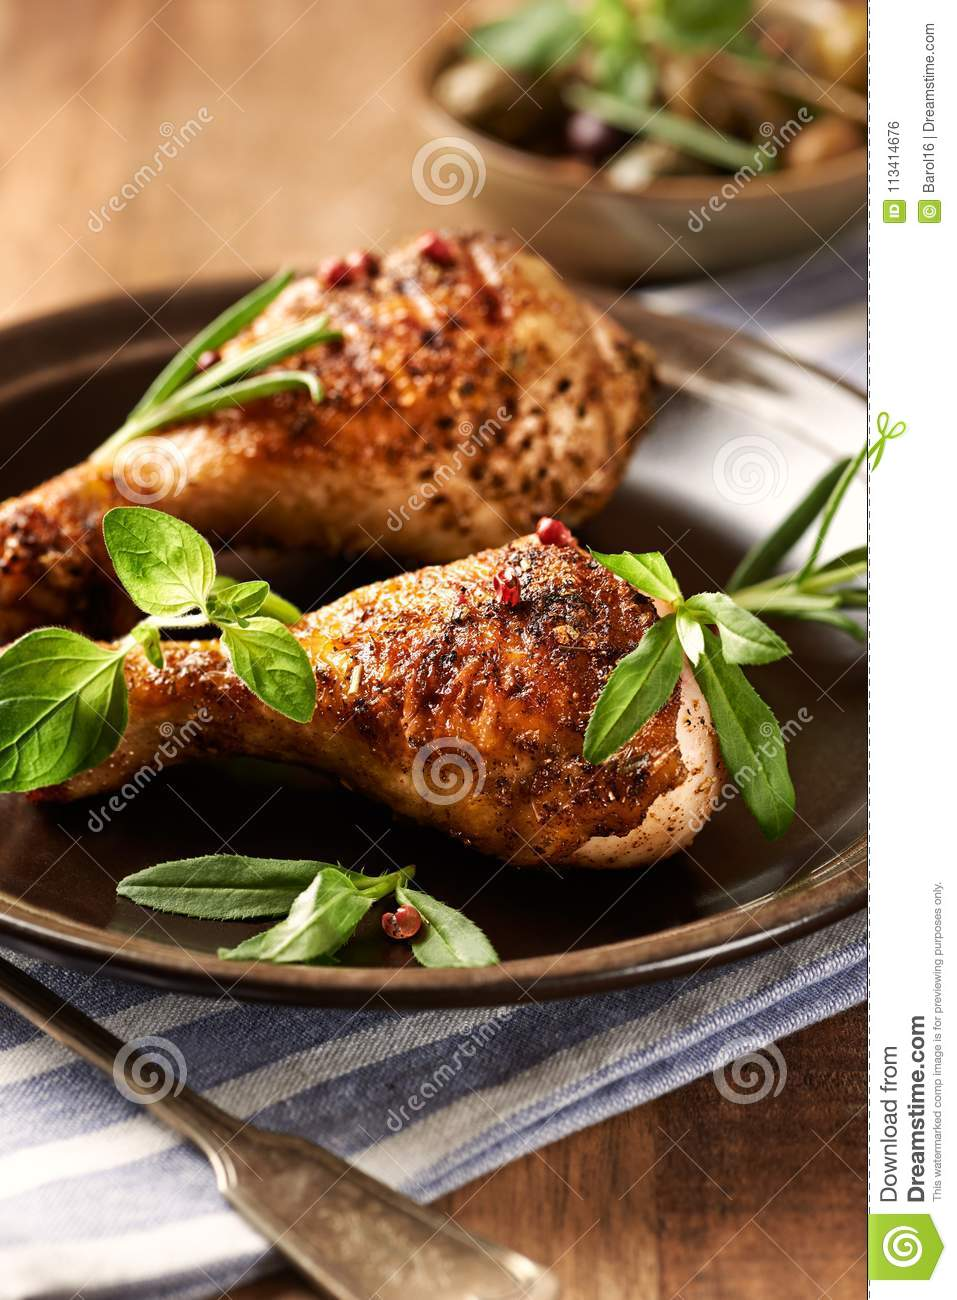 Spicy Chicken Legs with Herbs. Roasted chicken drumsticks, crispy golden brown skin.